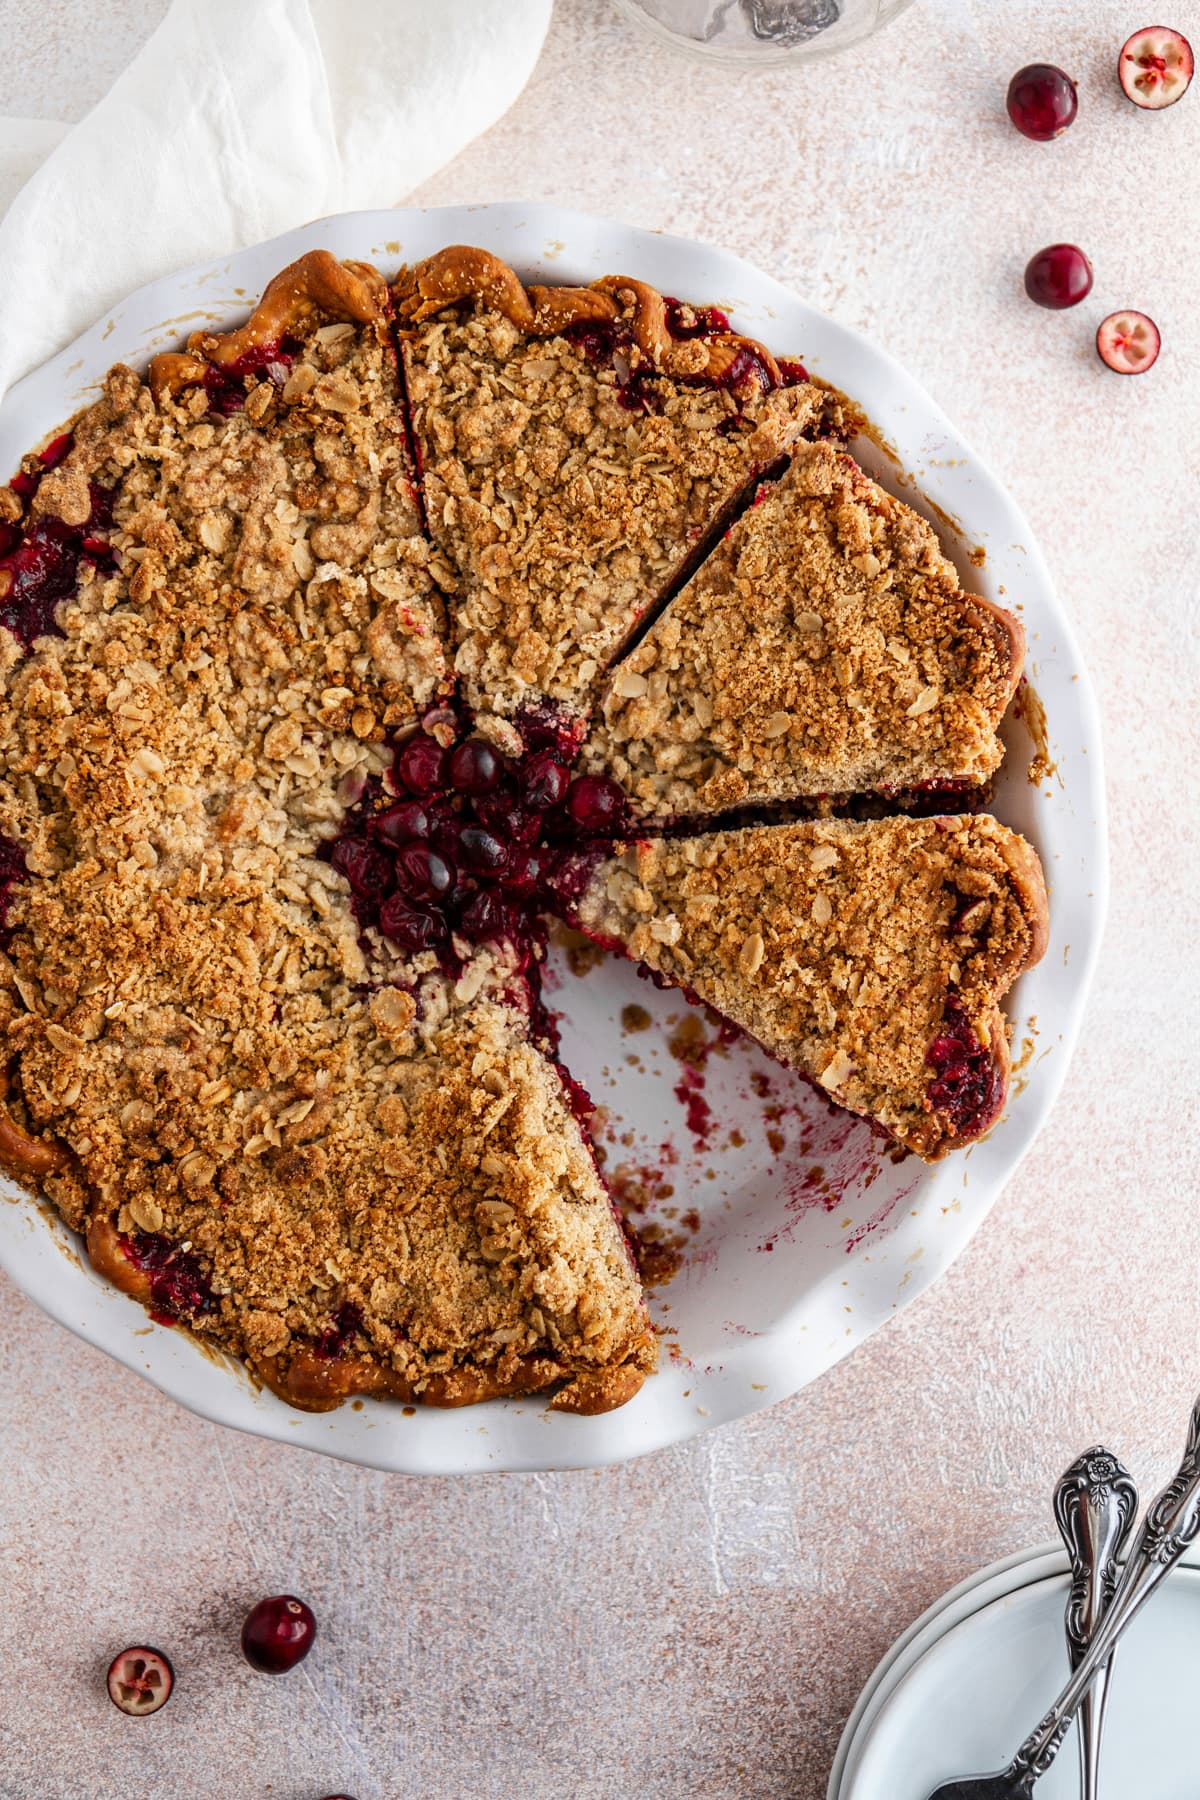 cranberry crumble pie on a surface with a slice taken out of it